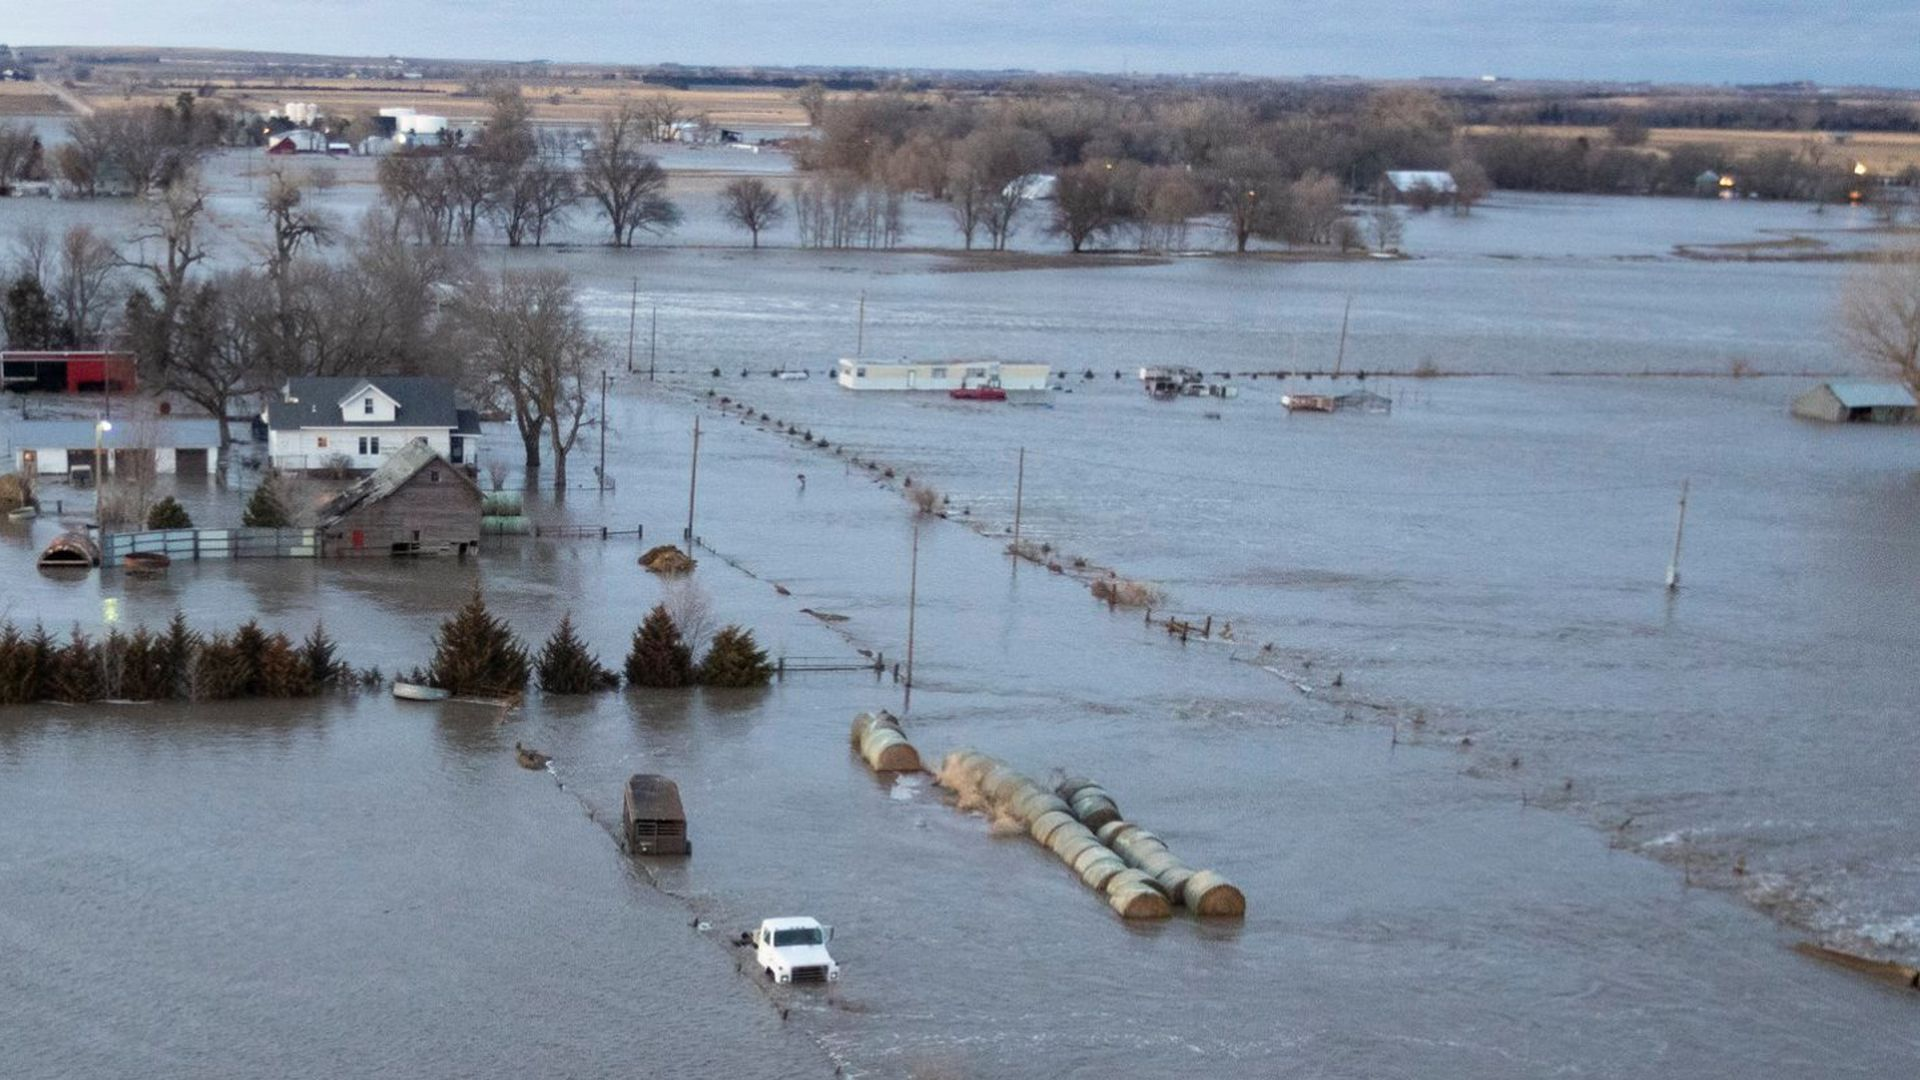 This Nebraska National Guard photo shows the devastating impact of the flooding.